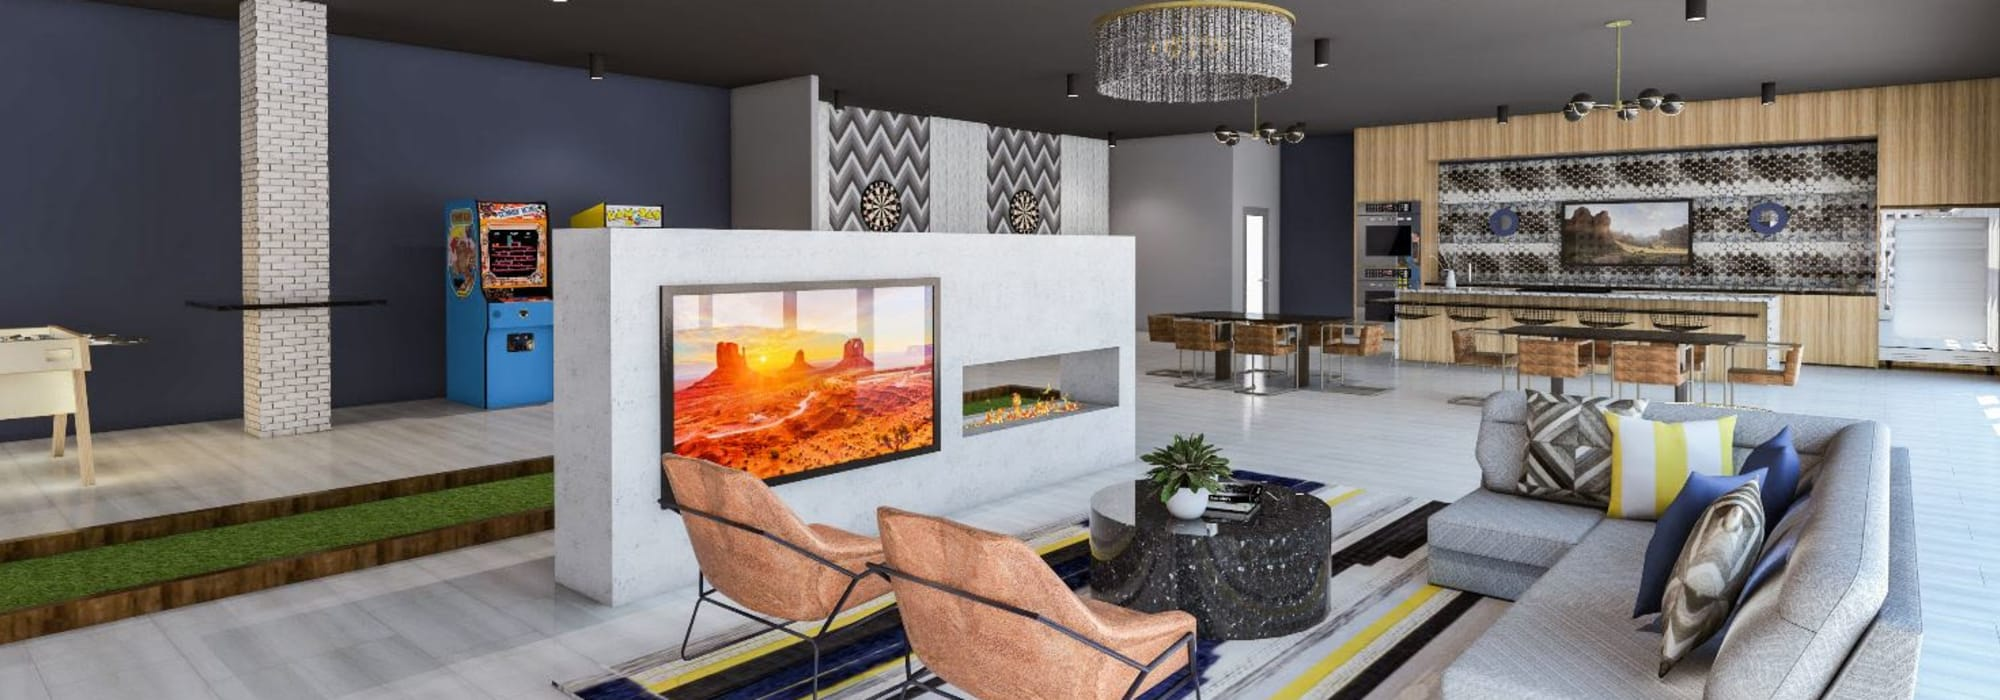 Clubhouse area with fire place and TV at Tempe Metro in Tempe, Arizona